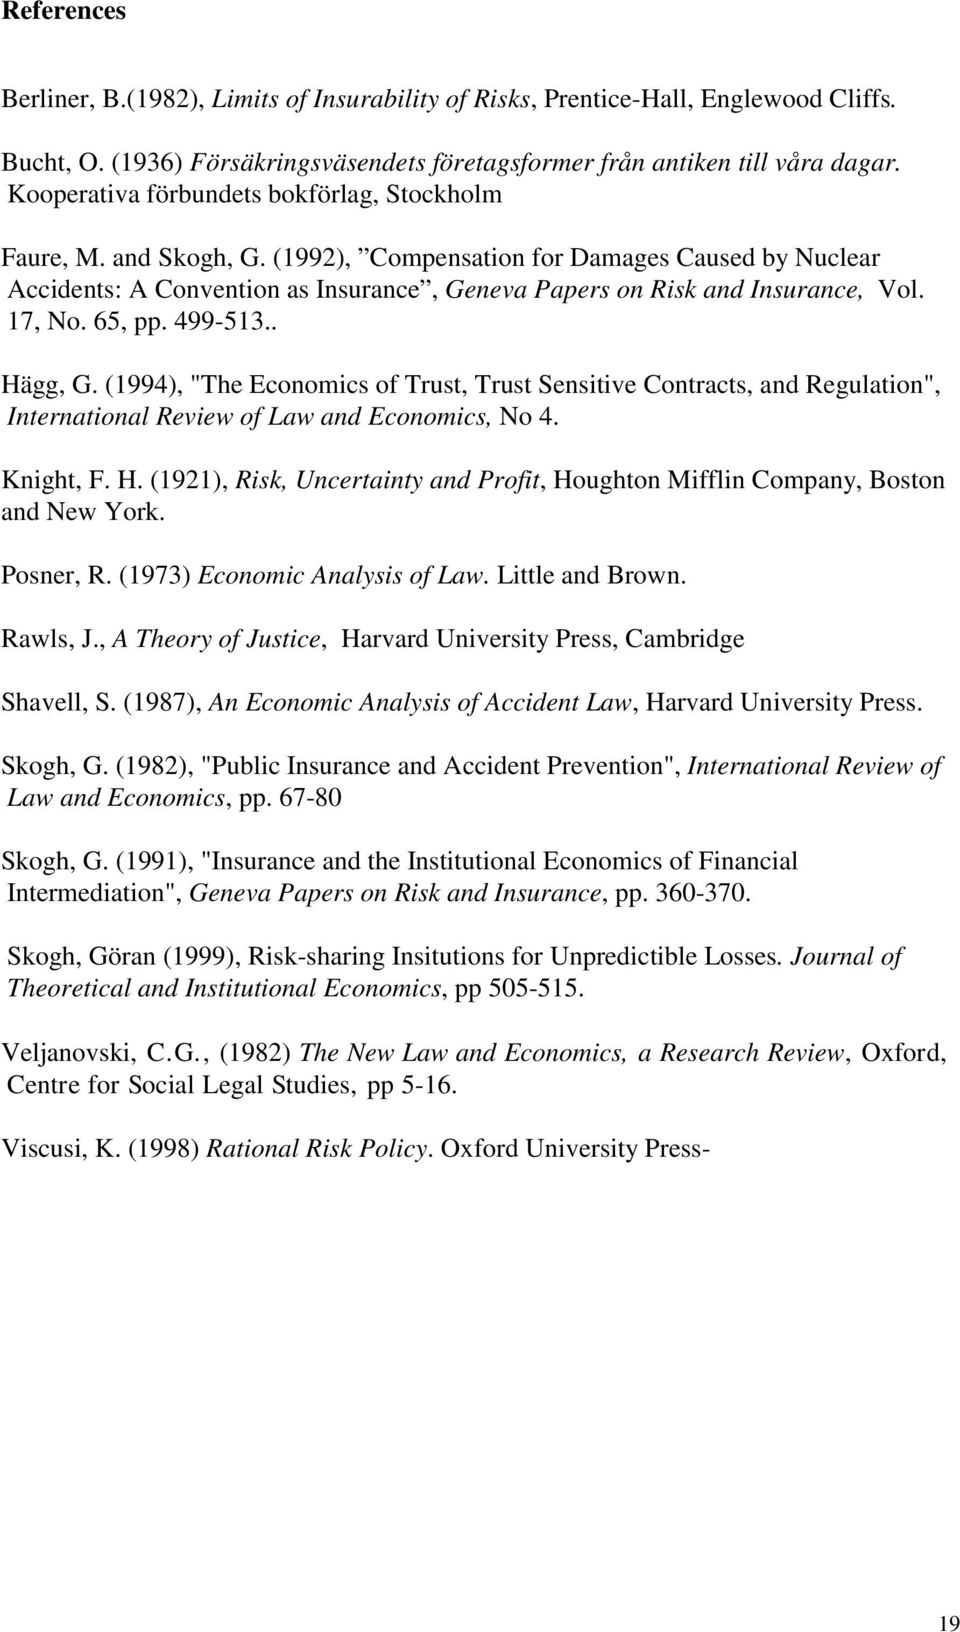 "17, No. 65, pp. 499-513.. Hägg, G. (1994), ""The Economics of Trust, Trust Sensitive Contracts, and Regulation"", International Review of Law and Economics, No 4. Knight, F. H. (1921), Risk, Uncertainty and Profit, Houghton Mifflin Company, Boston and New York."